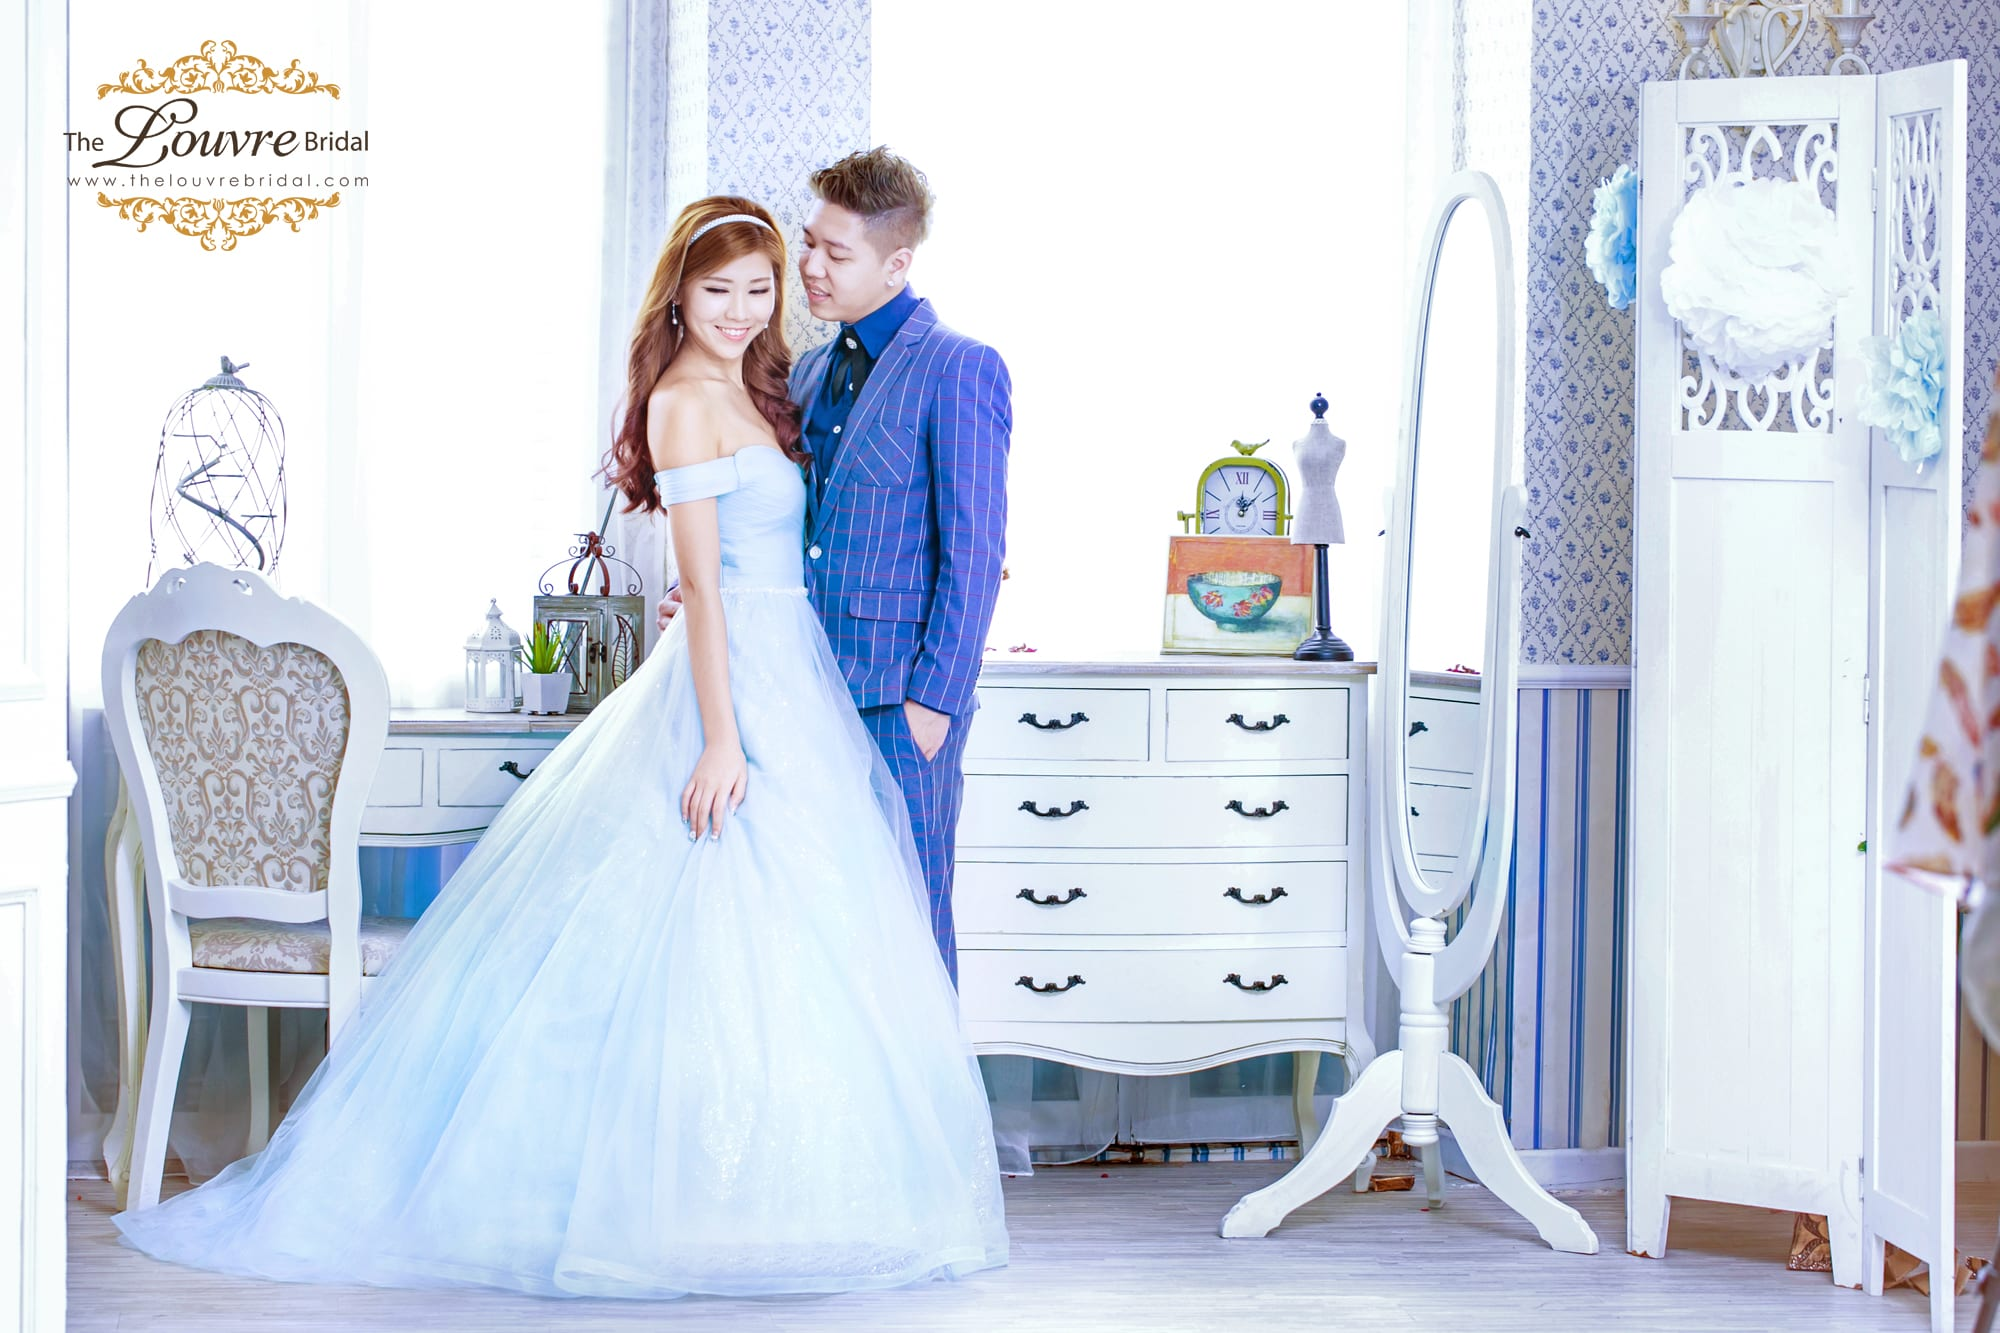 Photoshoot Tips 5 Items For Your Pre Wedding To